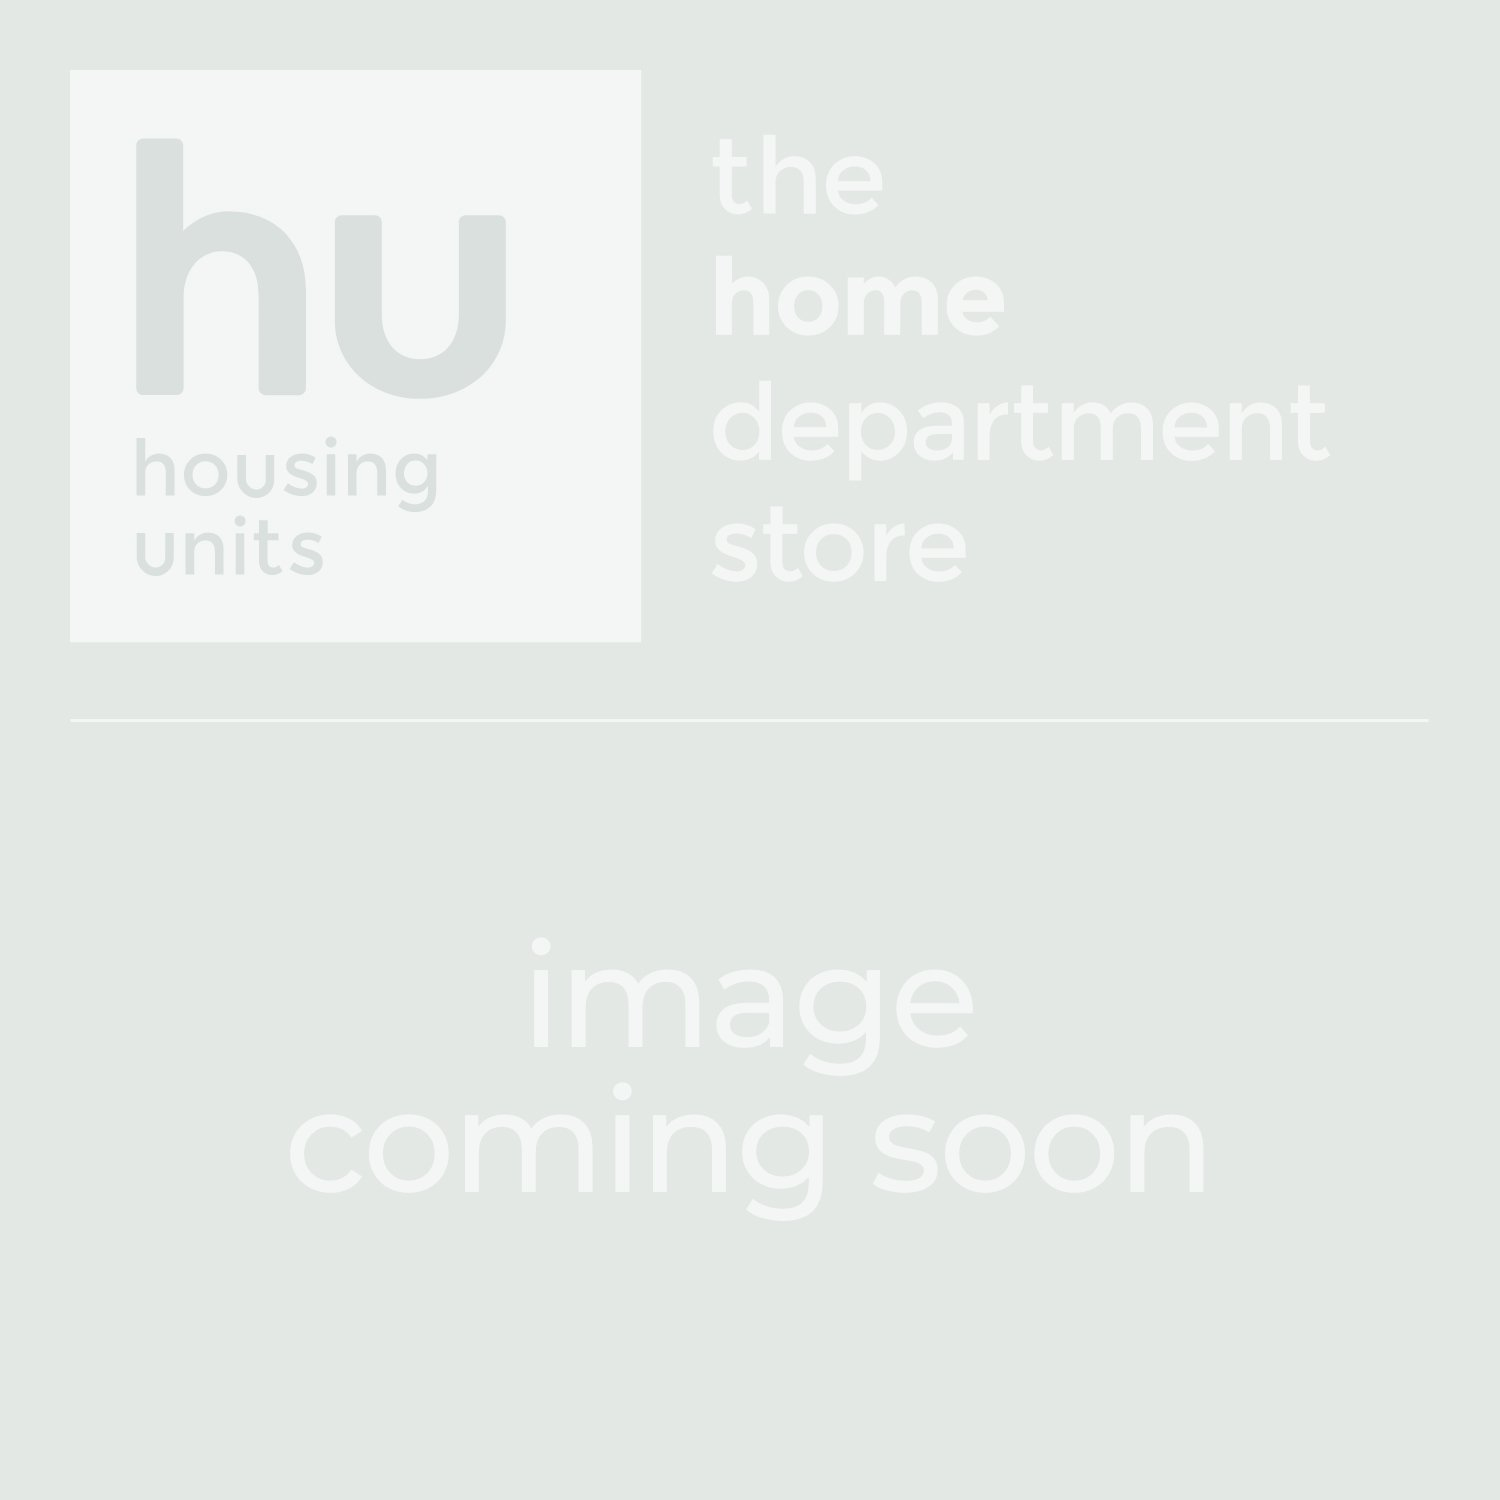 Breville Flow Black 4 Slice Toaster | Housing Units